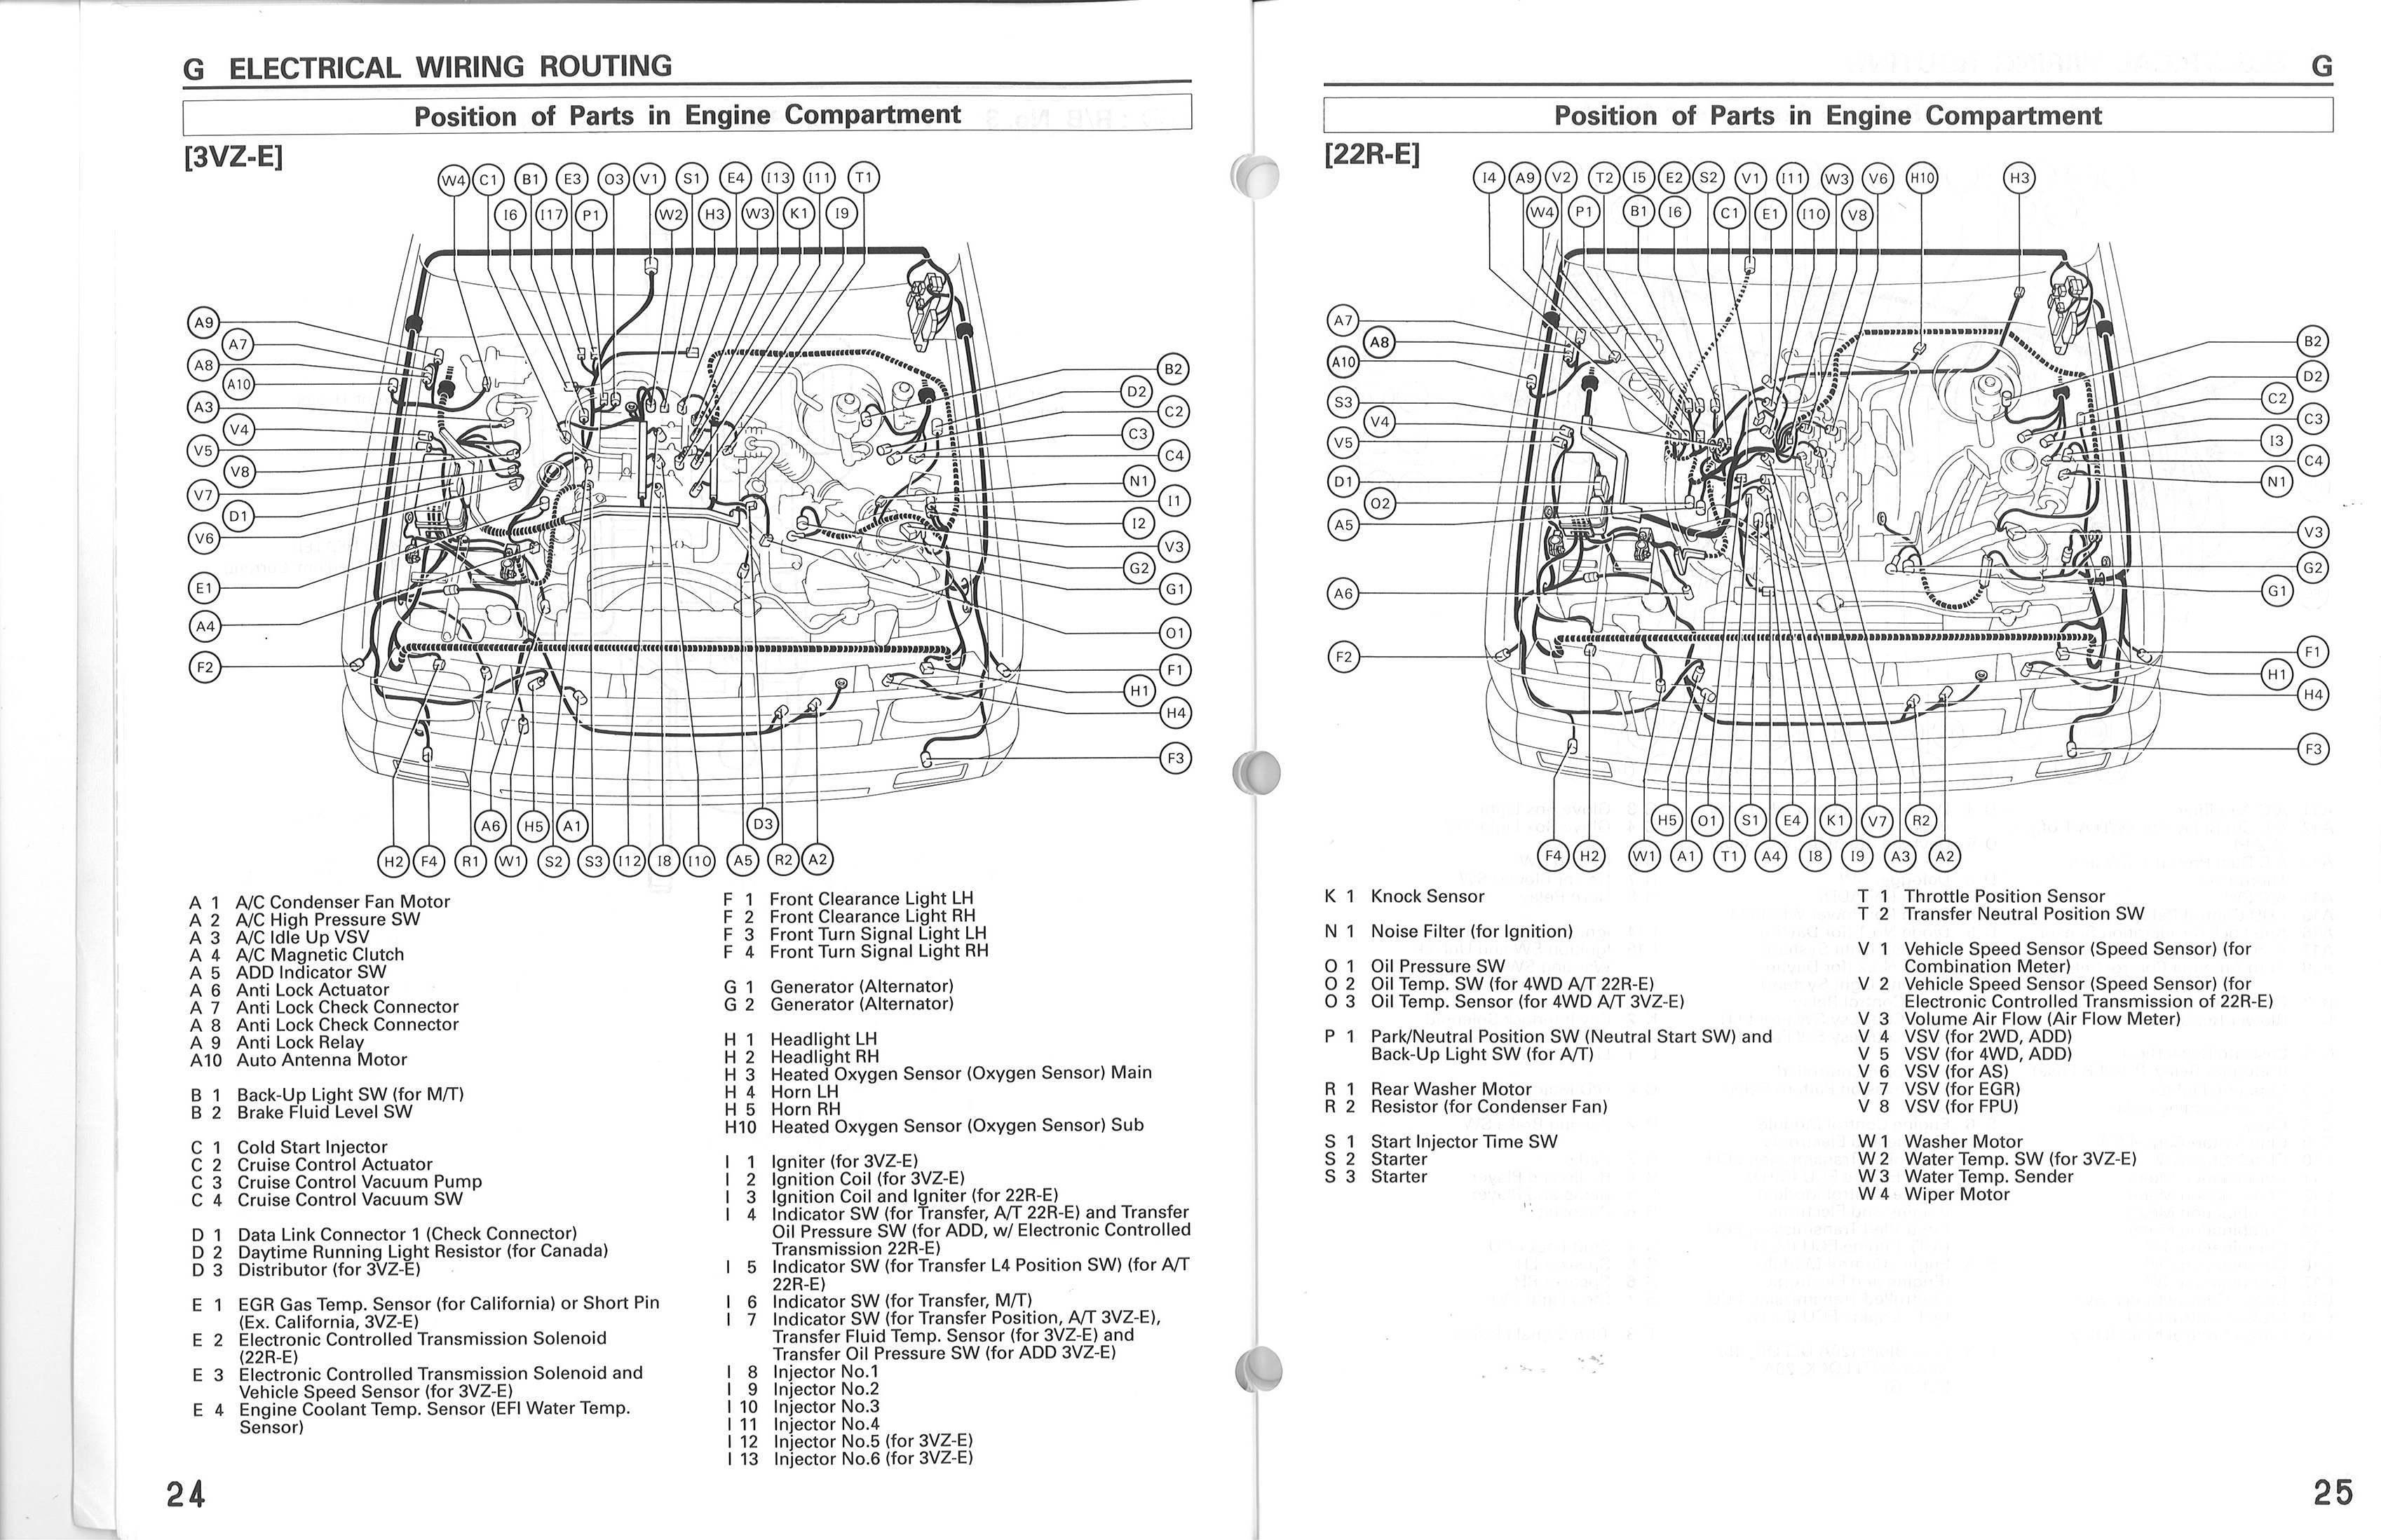 1988 Dodge 360 Engine Diagram also 860544 Glow Plug Wire Harness additionally Honda Accord88 Radiator Diagram And Schematics together with 88 S10 Fuse Box Diagram moreover AutoTrans. on fuse box in 1990 toyota camry